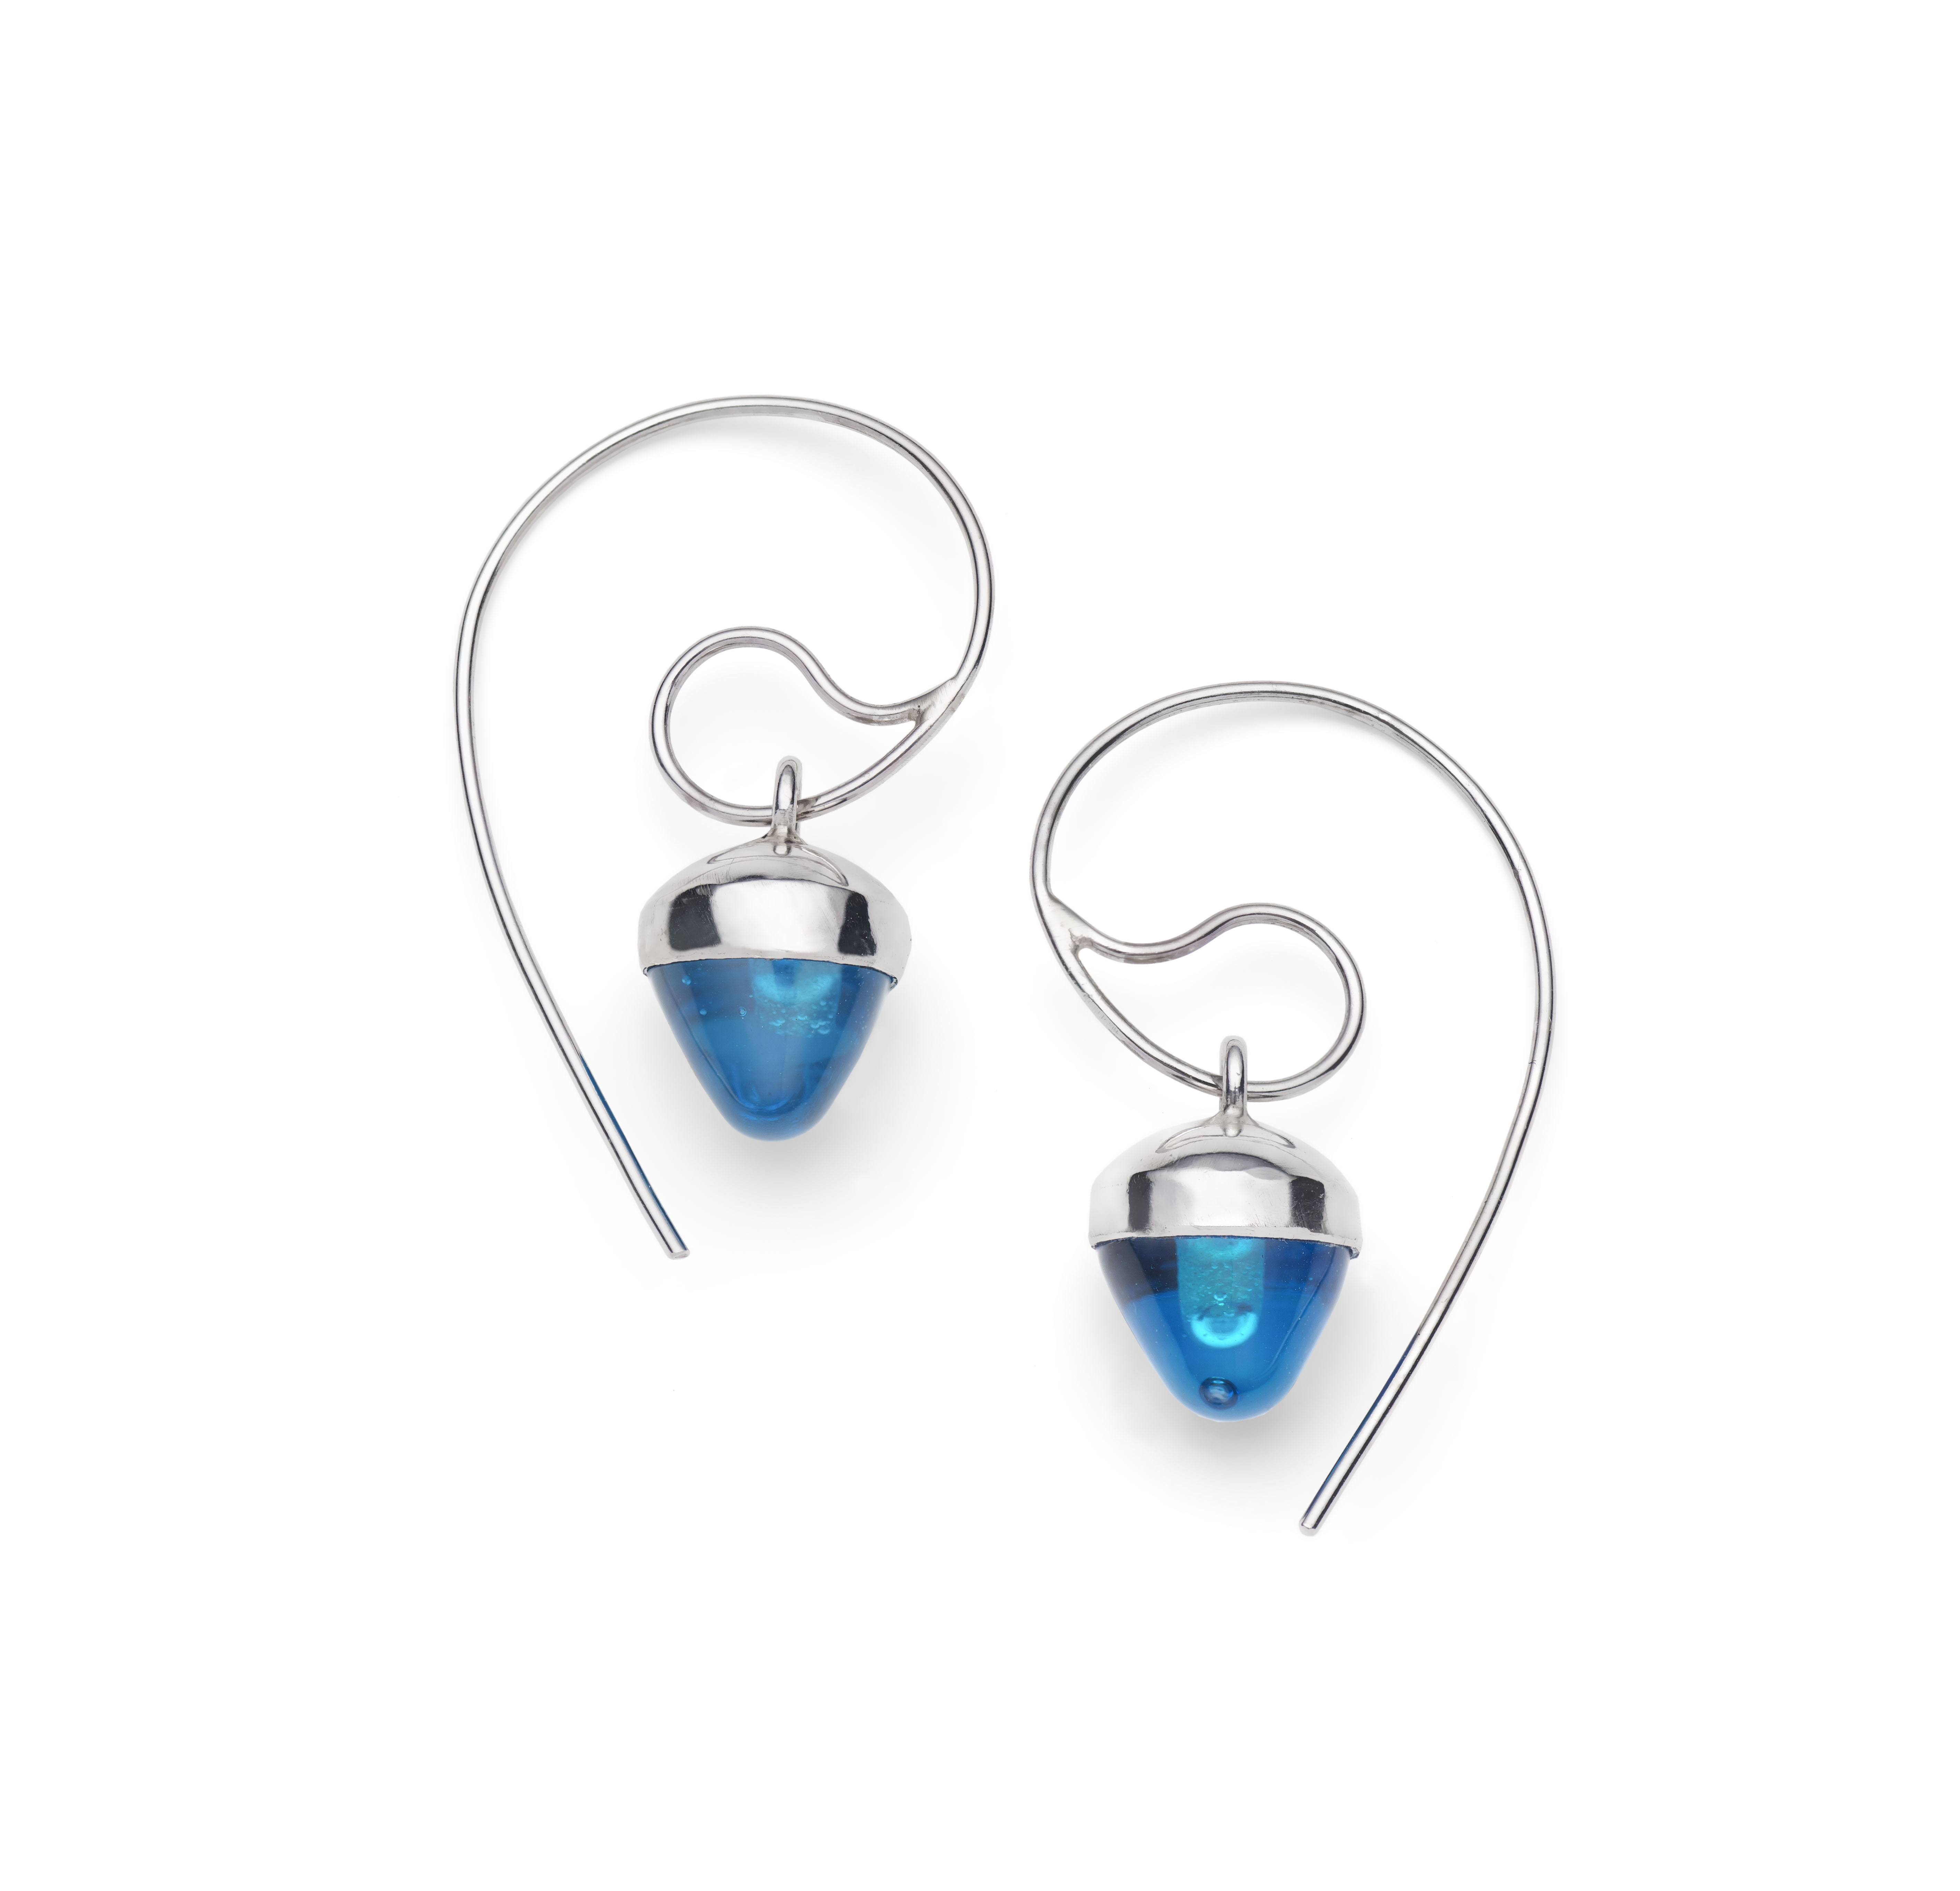 Pulsar Blue Glass Earrings